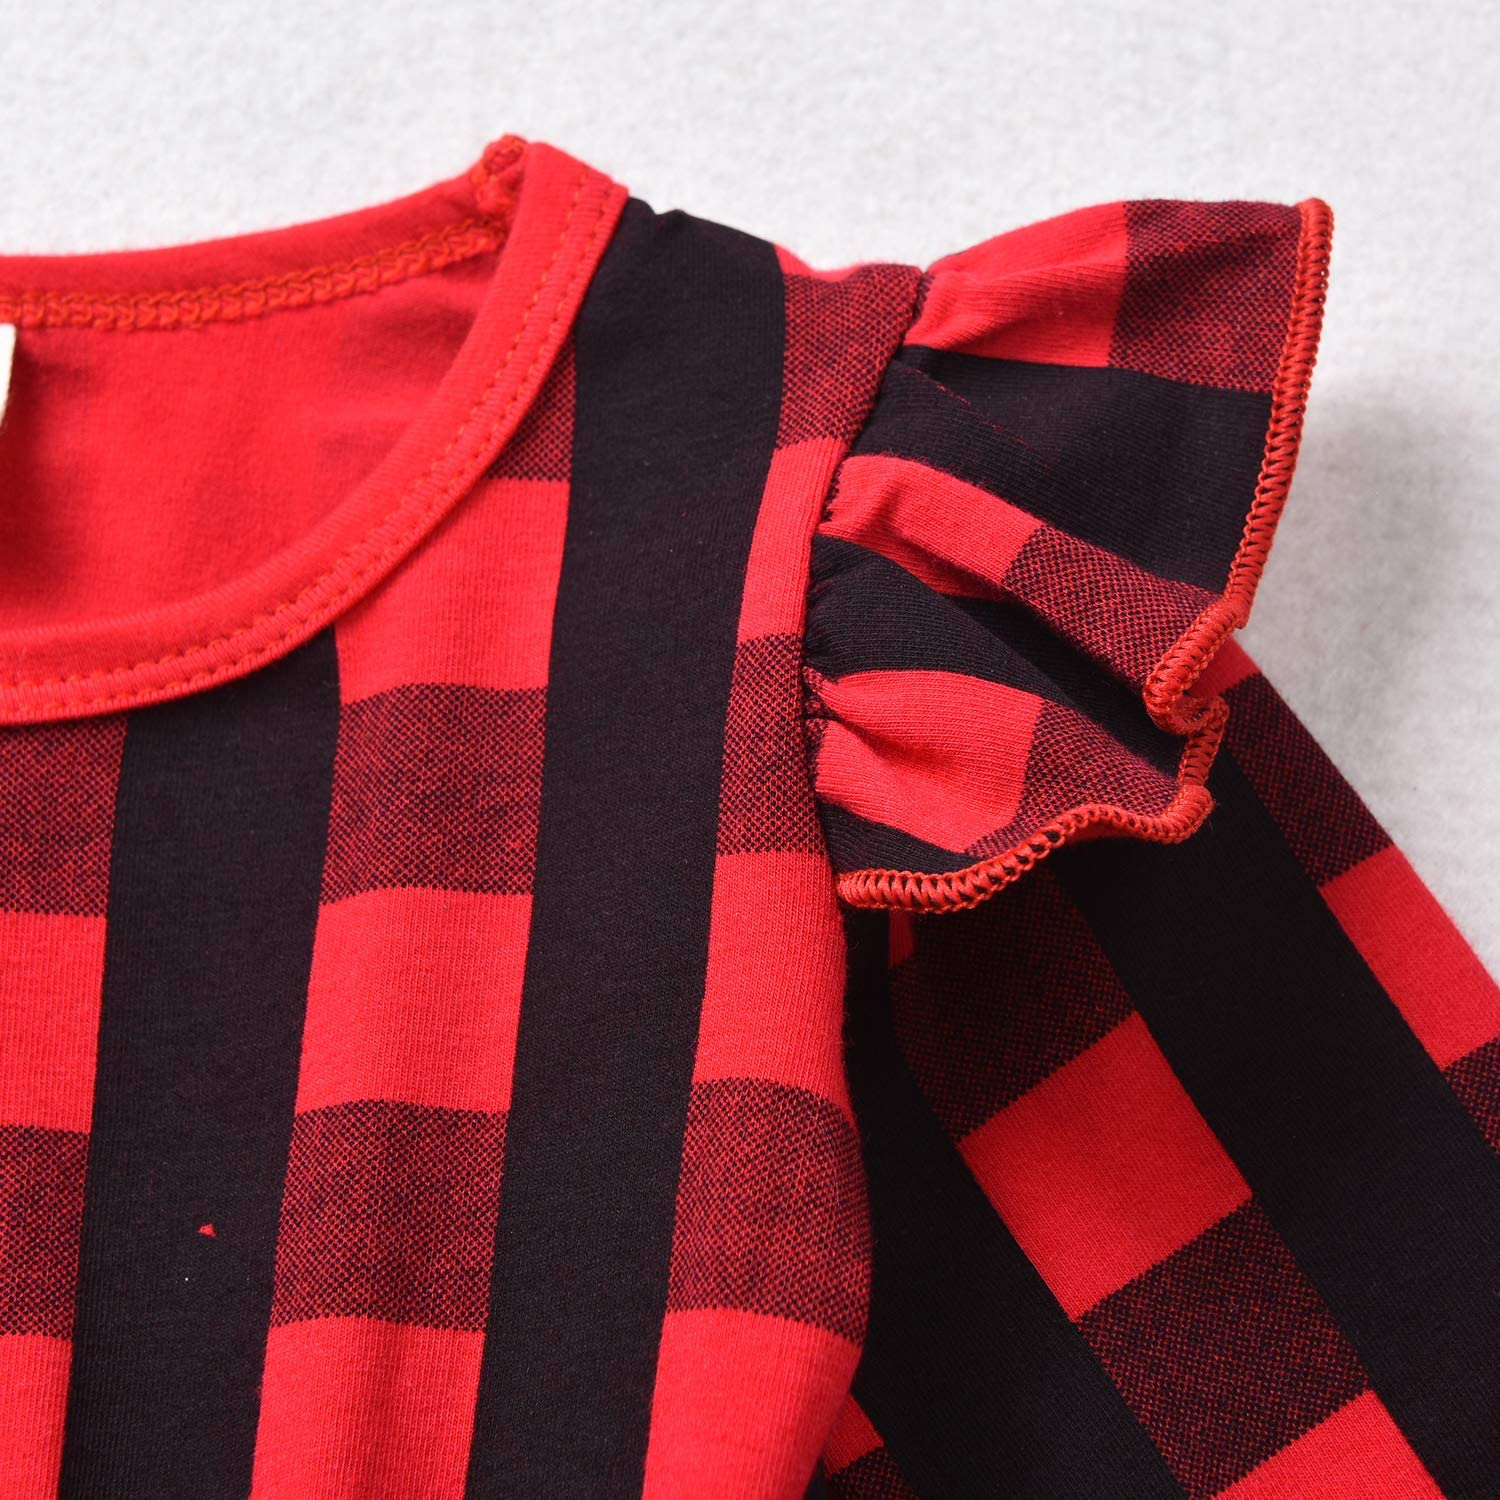 YOUNGER TREE Toddler Kids Baby Girls Plaid Dress Long Sleeve Princess Checked Party Dresses Cotton Outfits